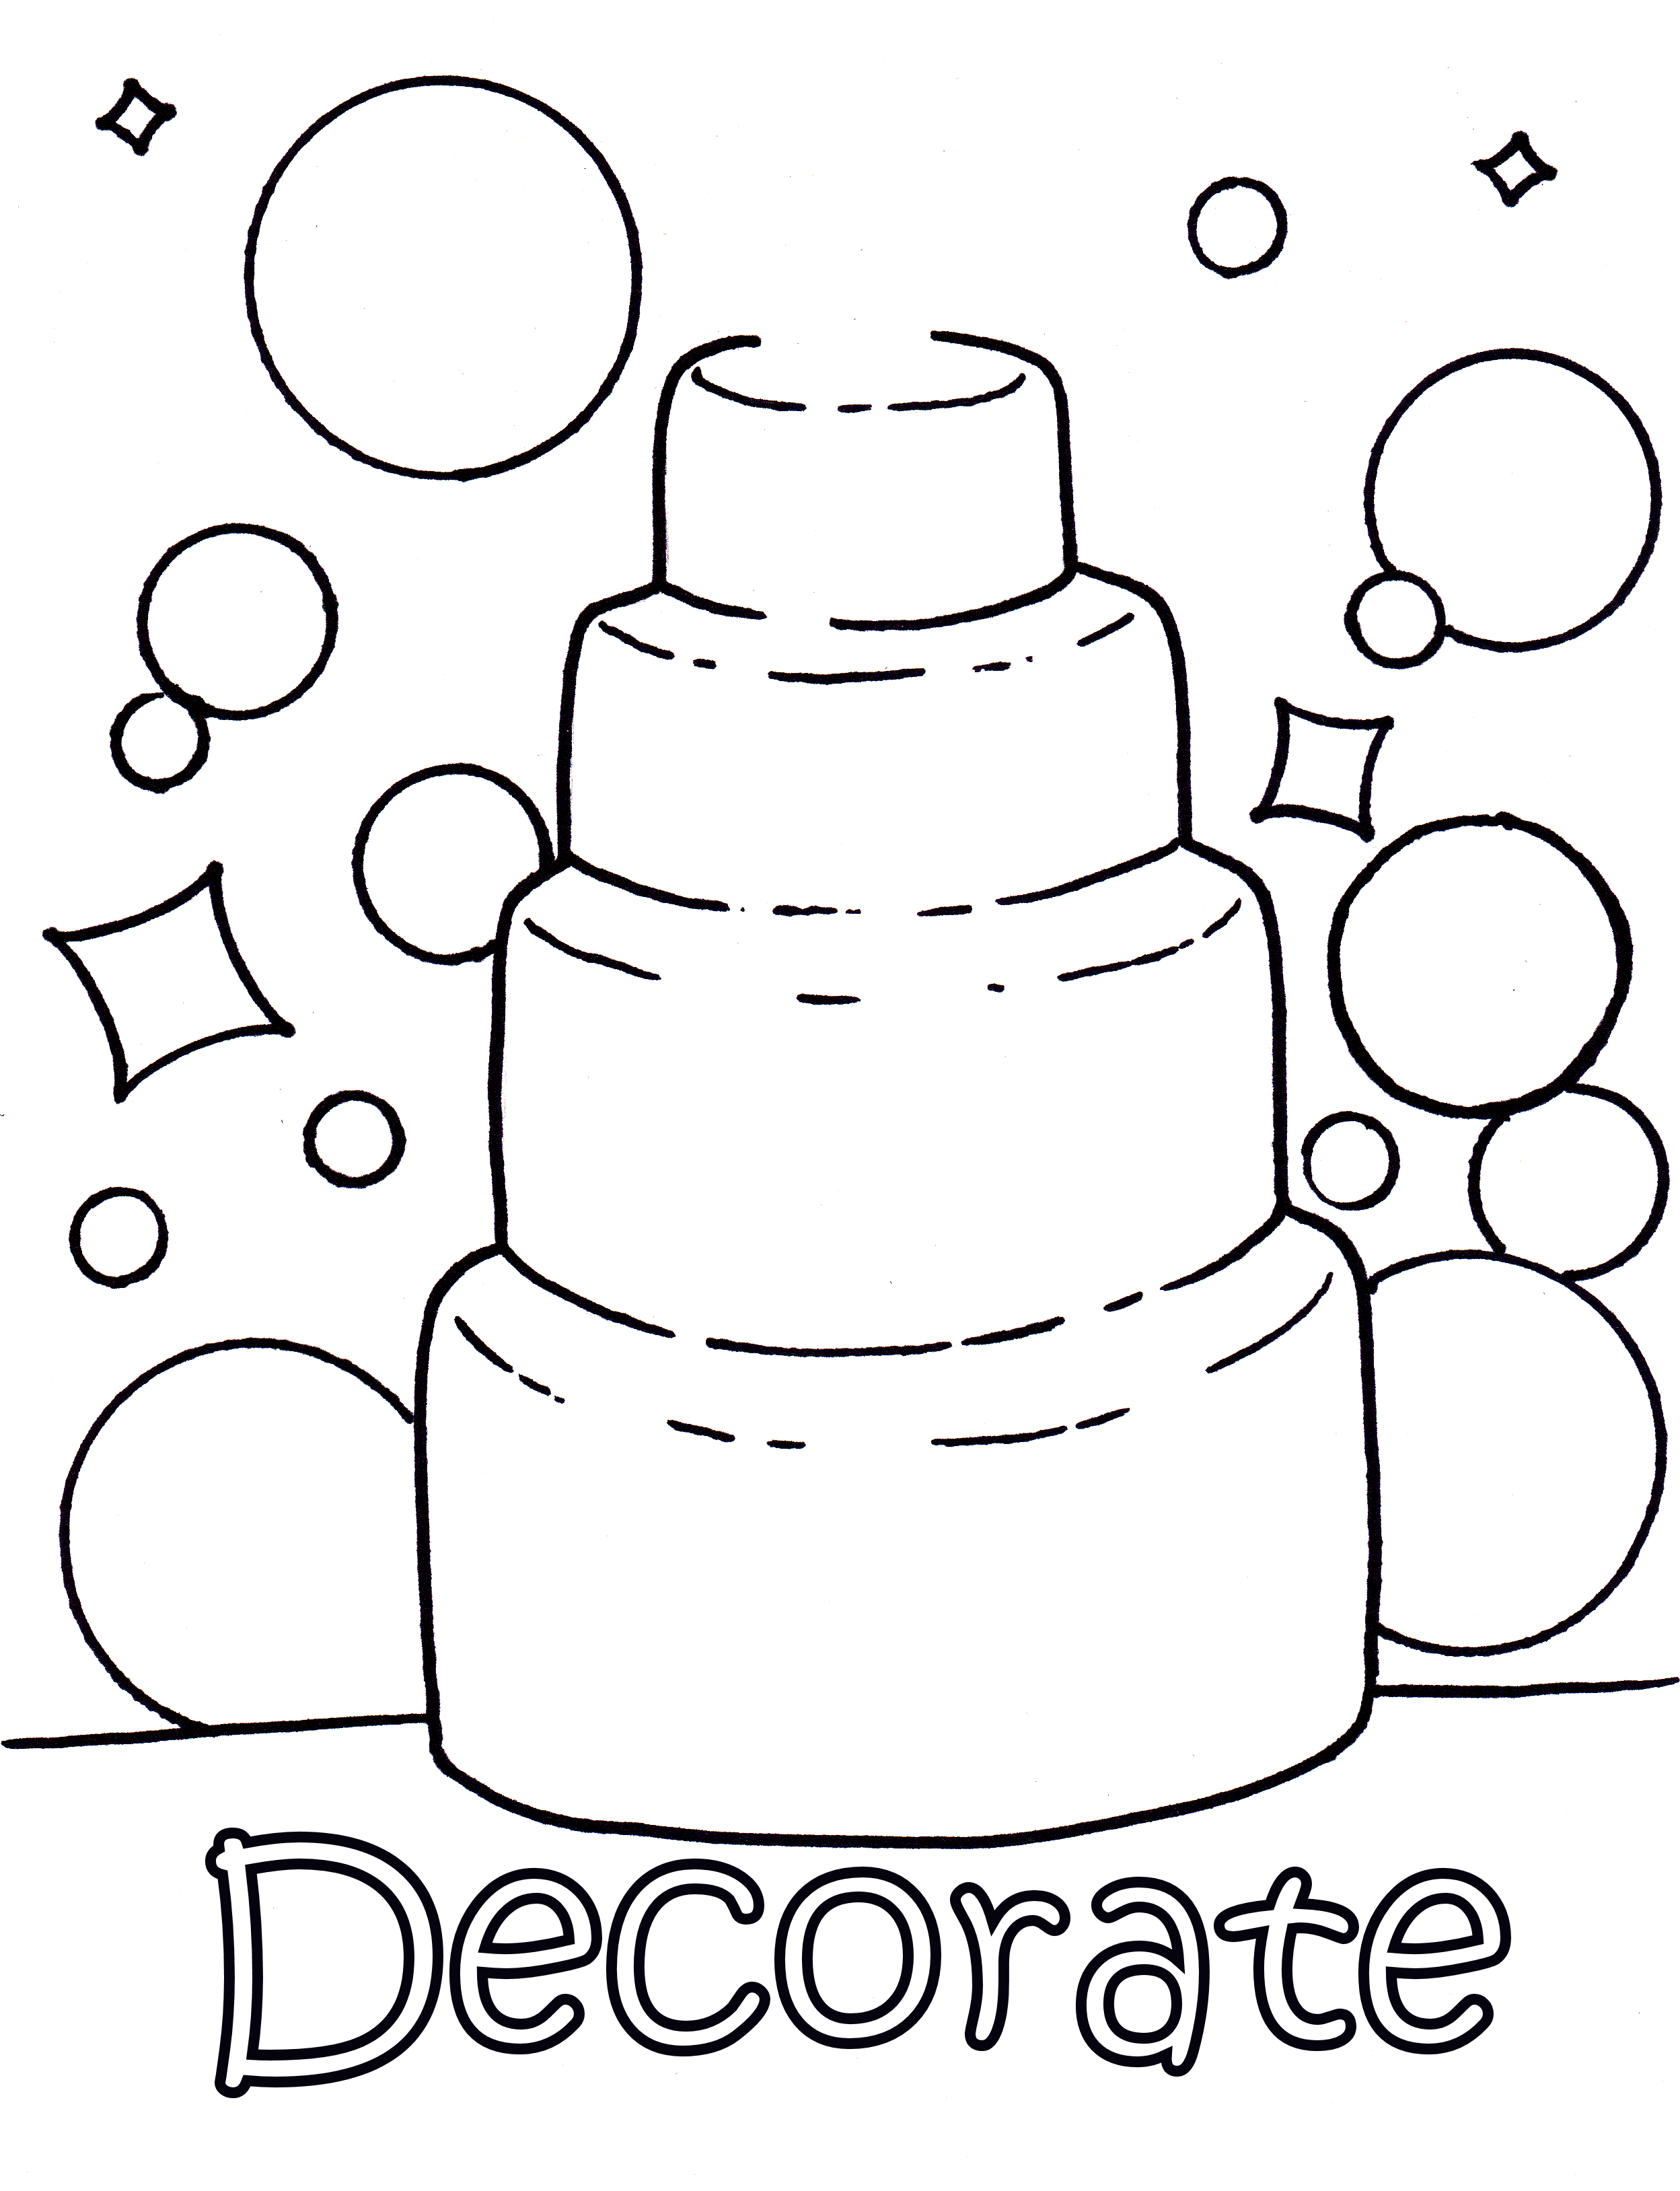 Cakedecorate Png 2497 3256 Wedding Coloring Pages Wedding With Kids Free Wedding Printables